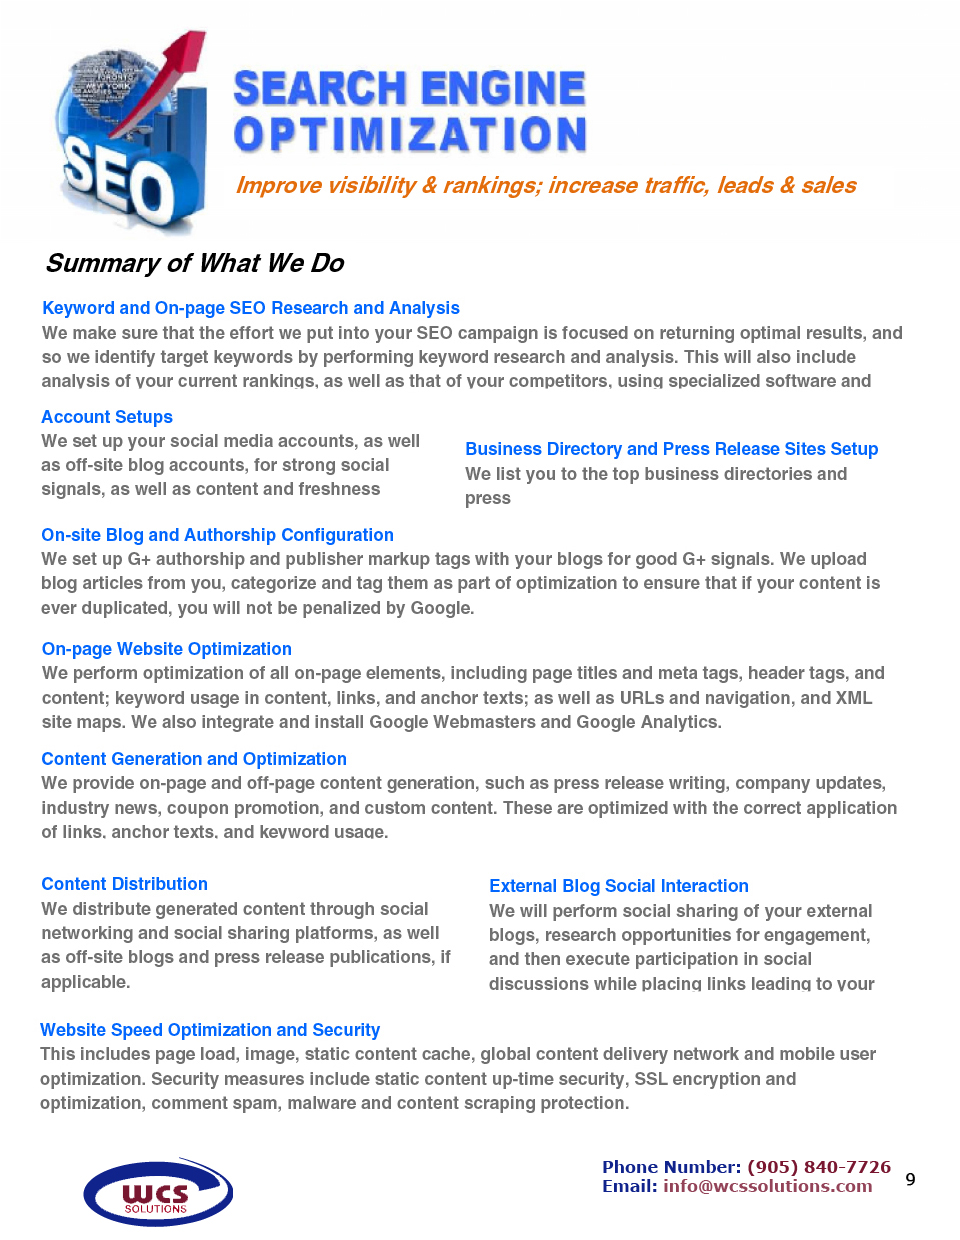 toronto search engine optimization services for a better online brand